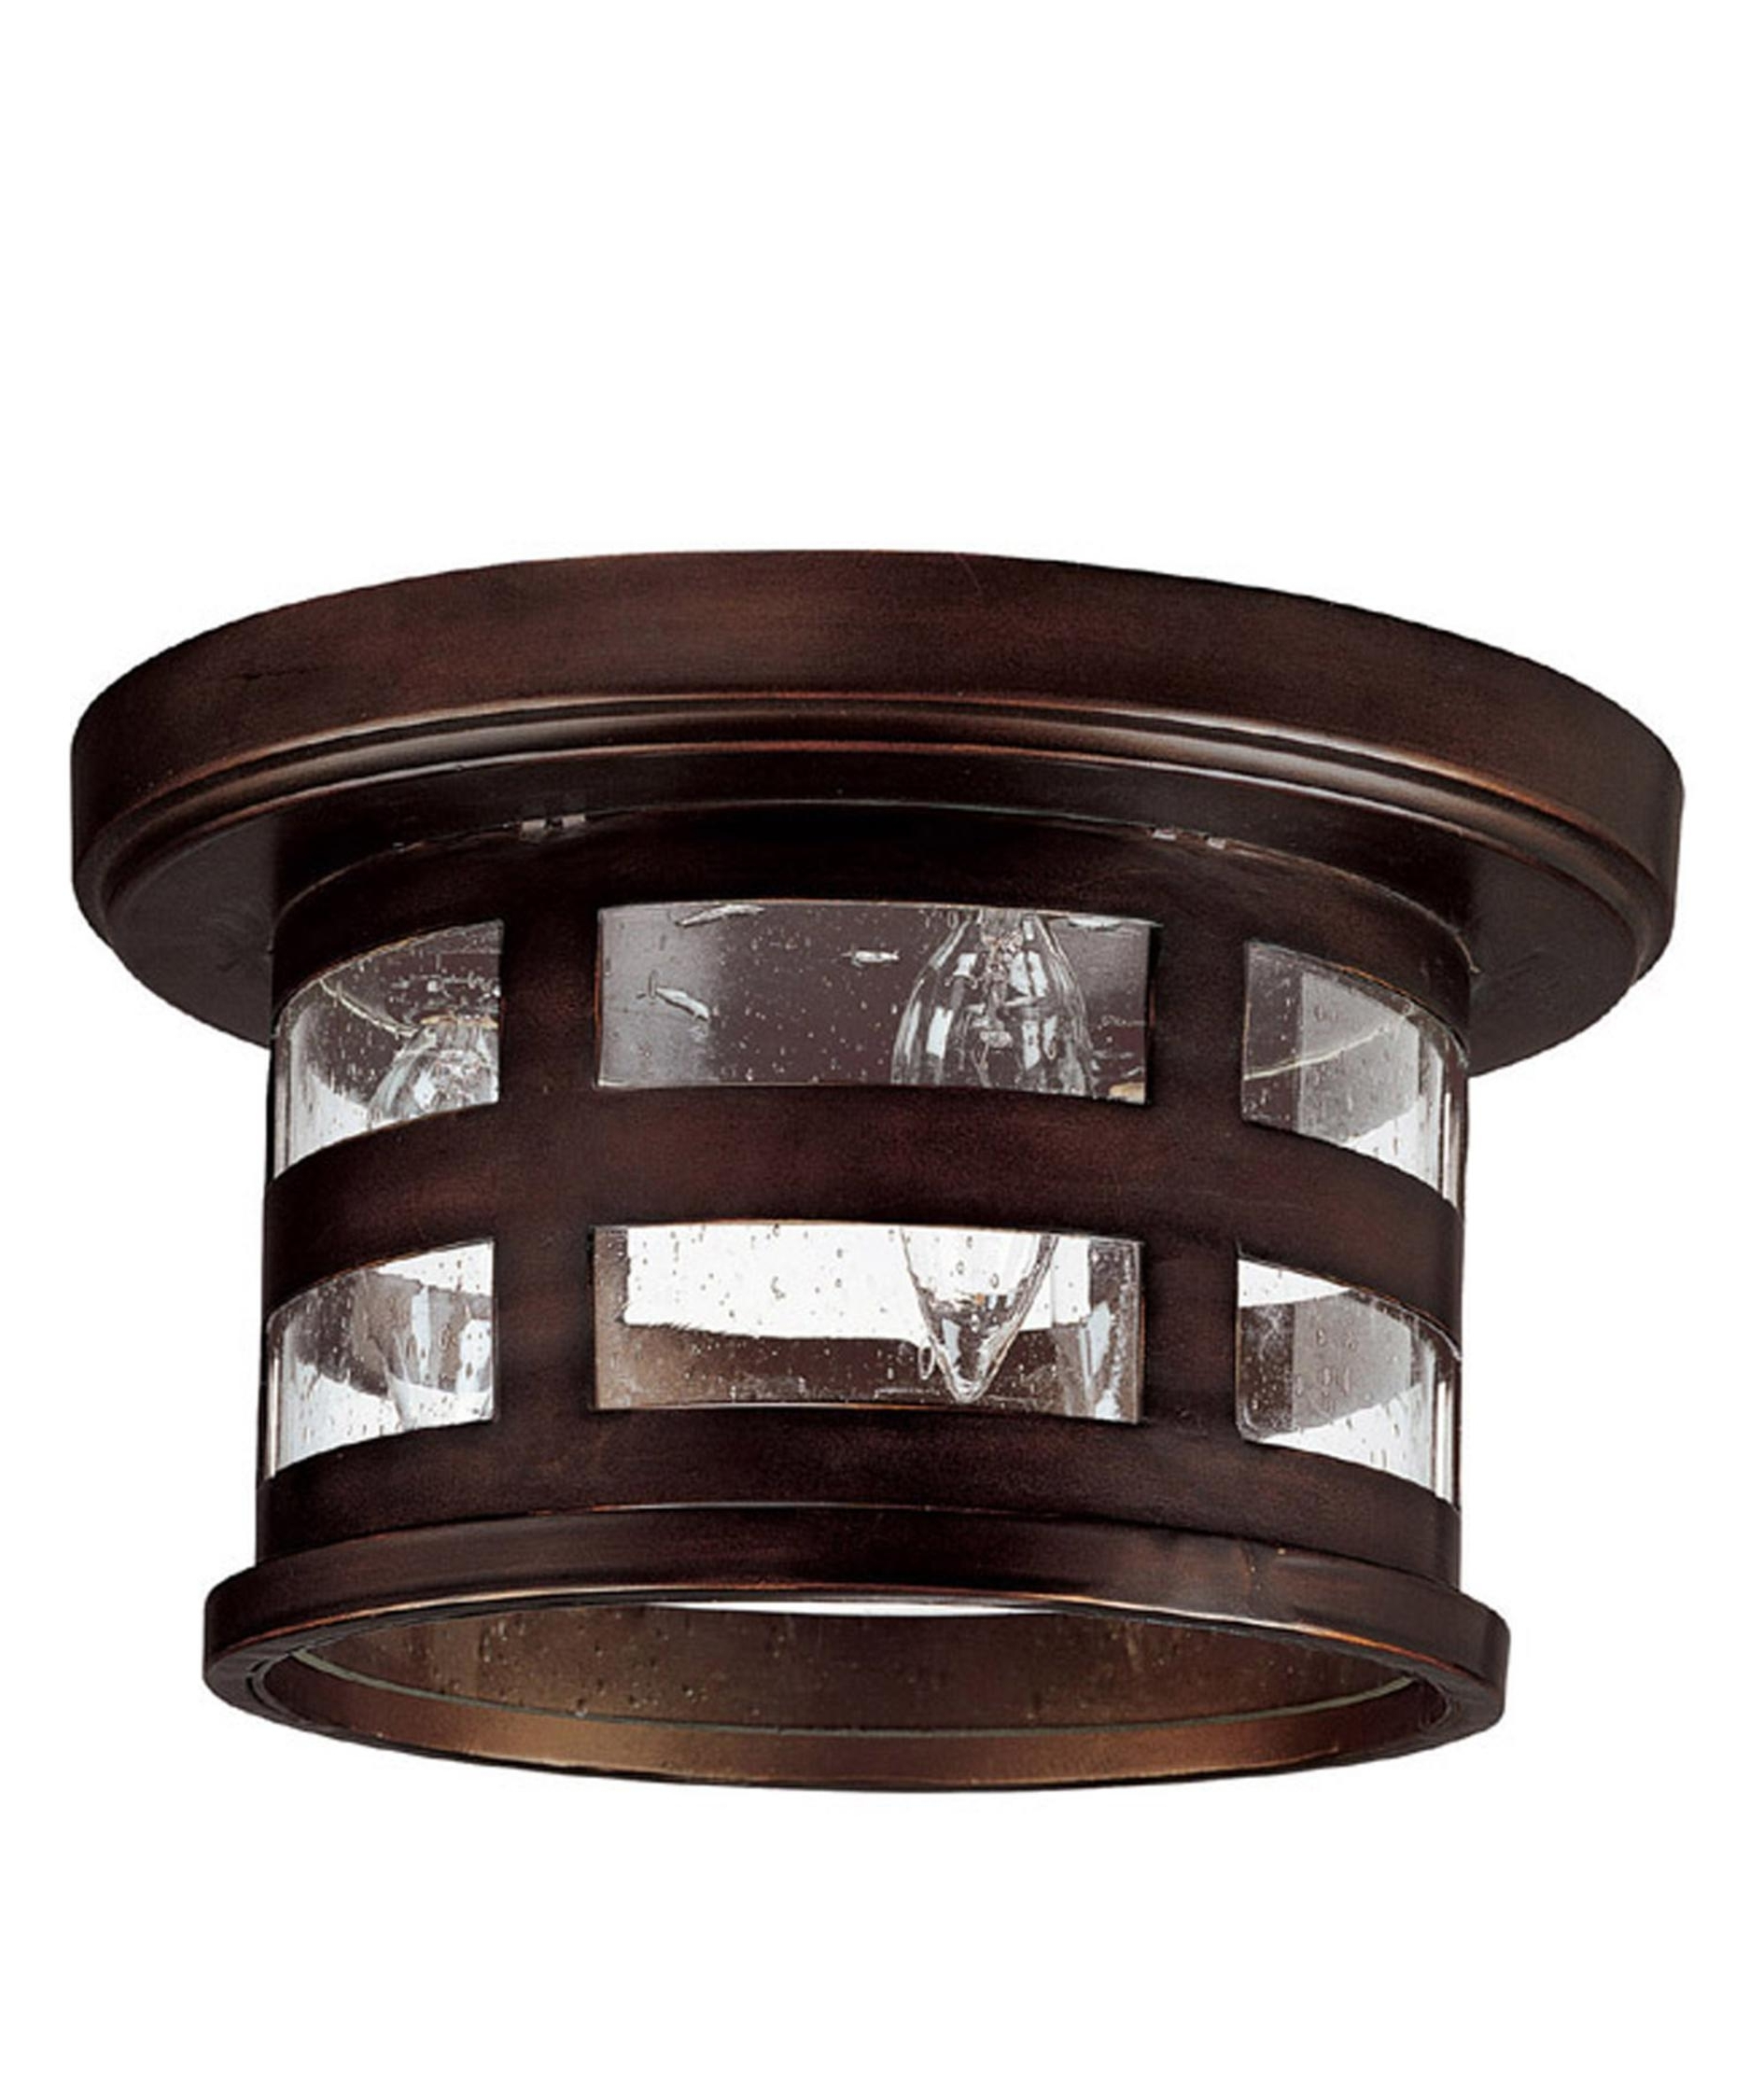 Capital Lighting 9956 Mission Hills 11 Inch Wide 3 Light Outdoor With Regard To Most Current Outdoor Ceiling Flush Lights (View 3 of 20)